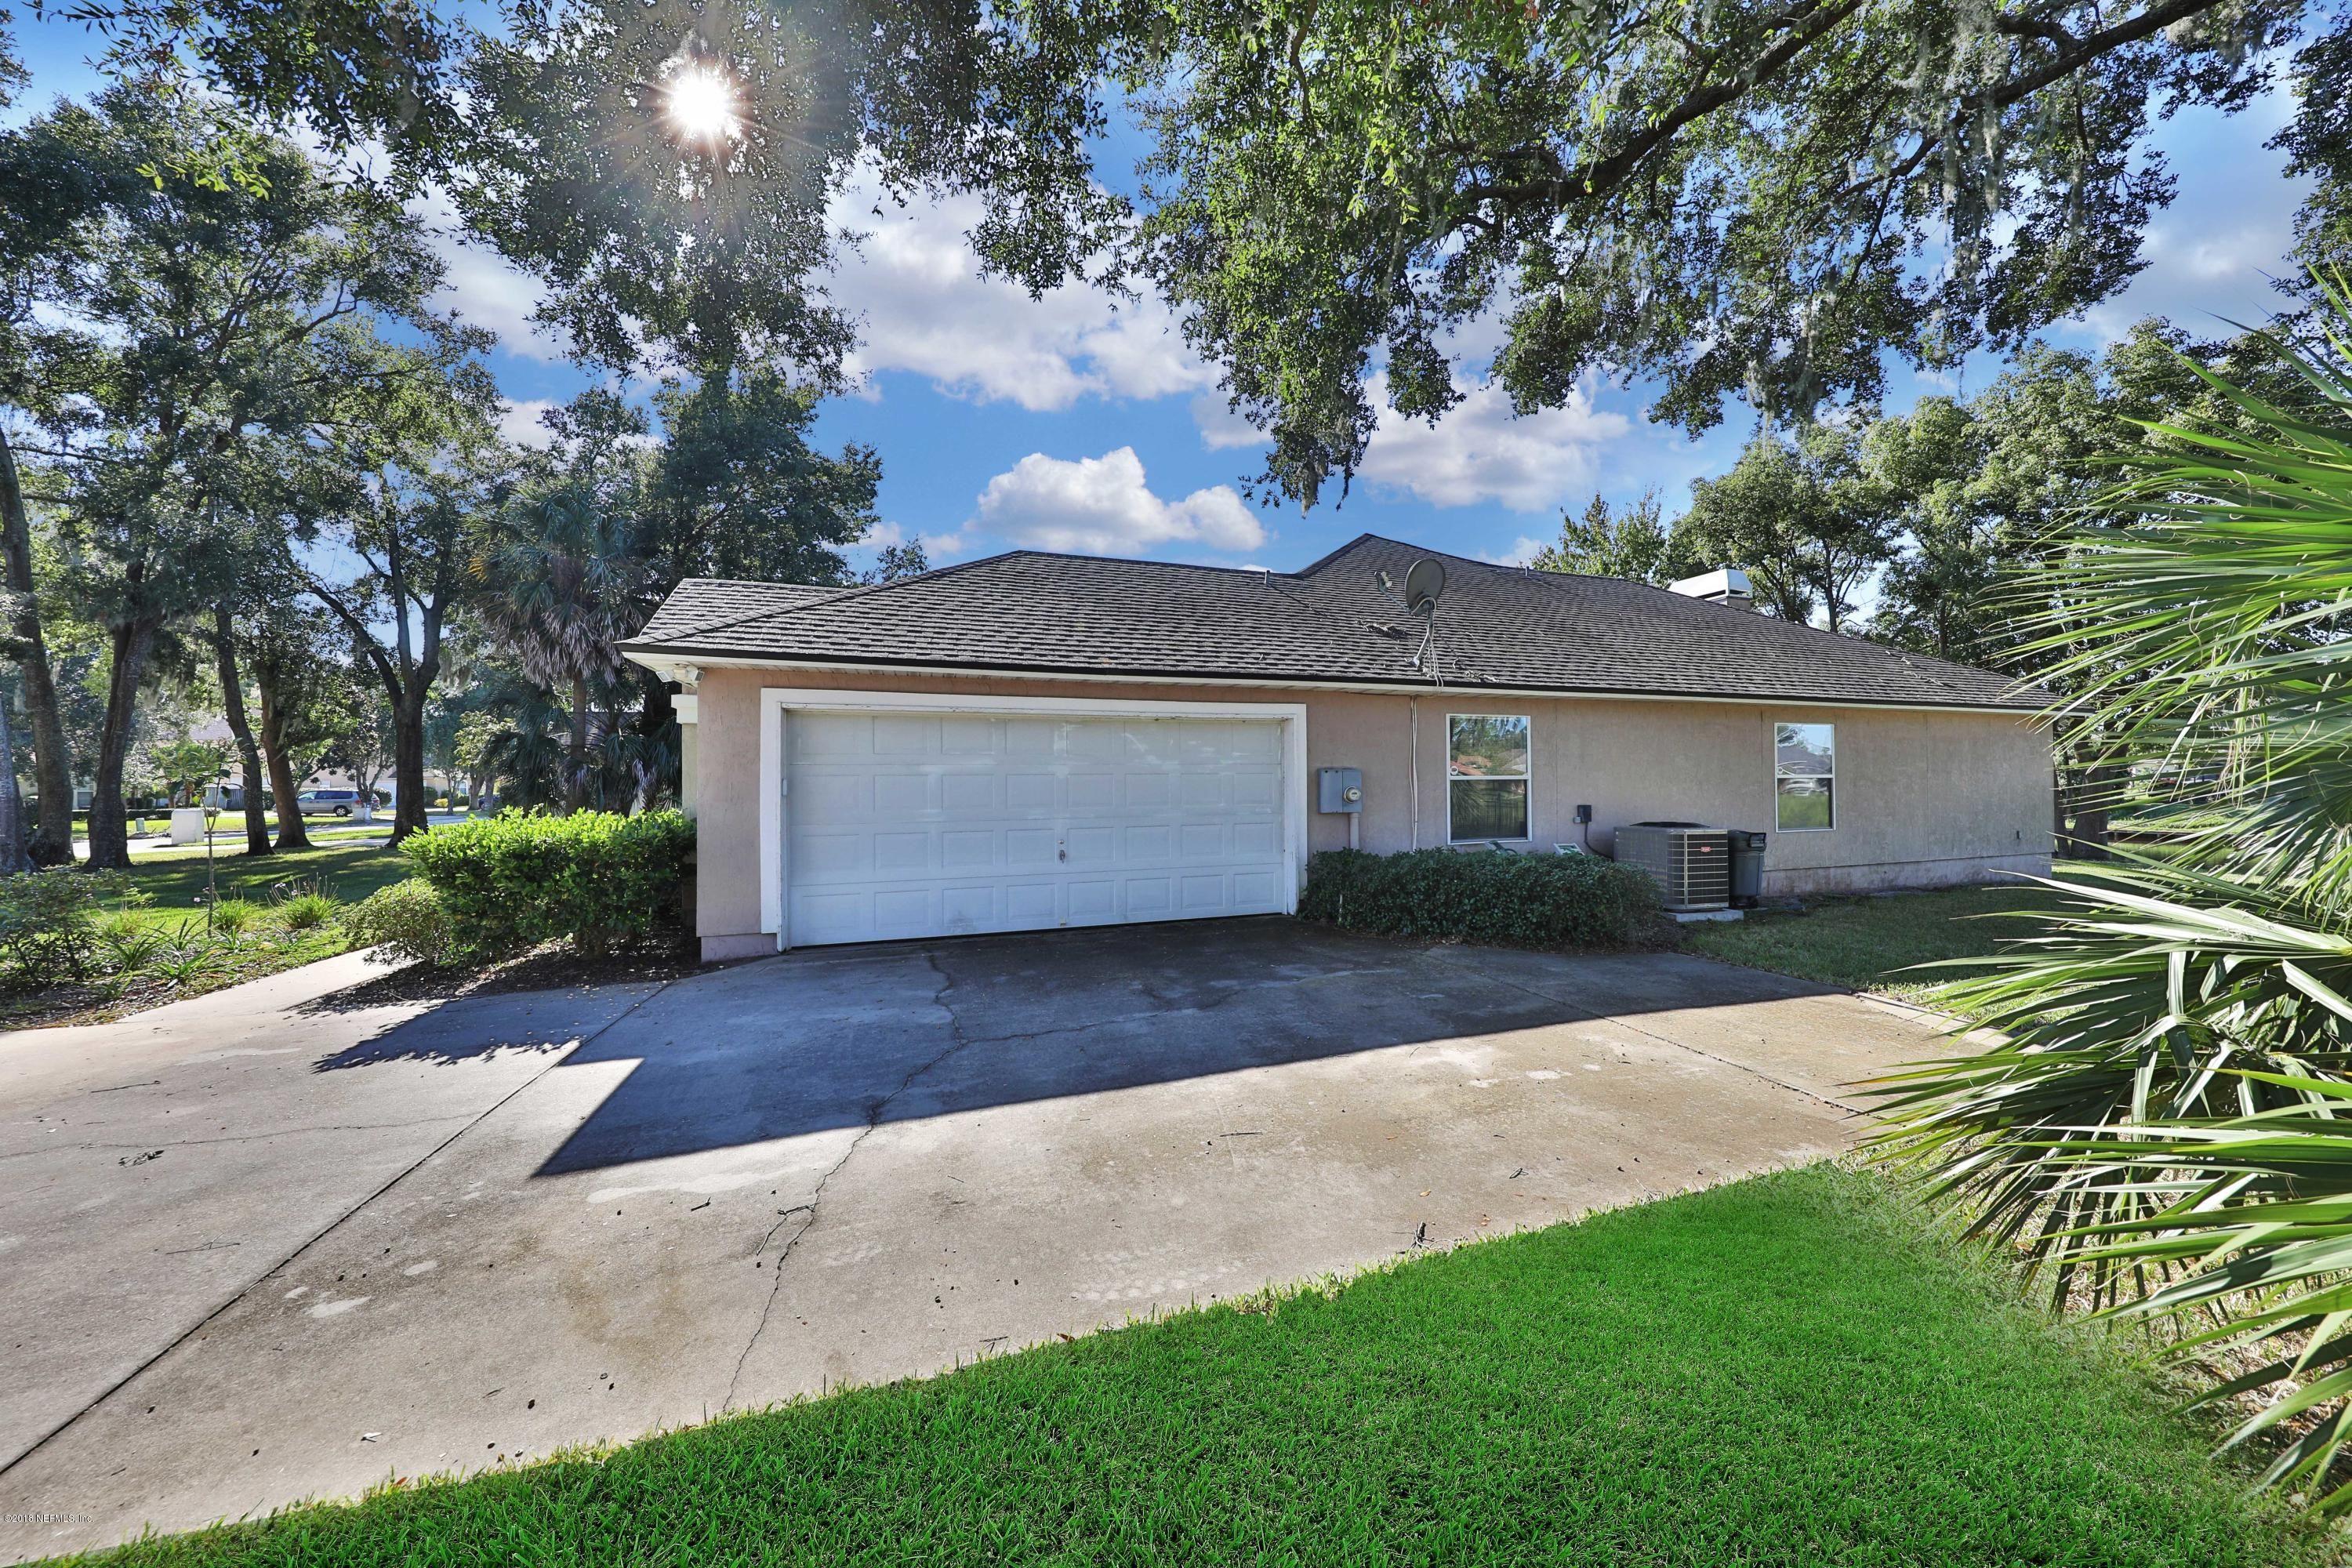 5035 CAPE ROMAIN, JACKSONVILLE, FLORIDA 32277, 4 Bedrooms Bedrooms, ,2 BathroomsBathrooms,Residential - single family,For sale,CAPE ROMAIN,965408